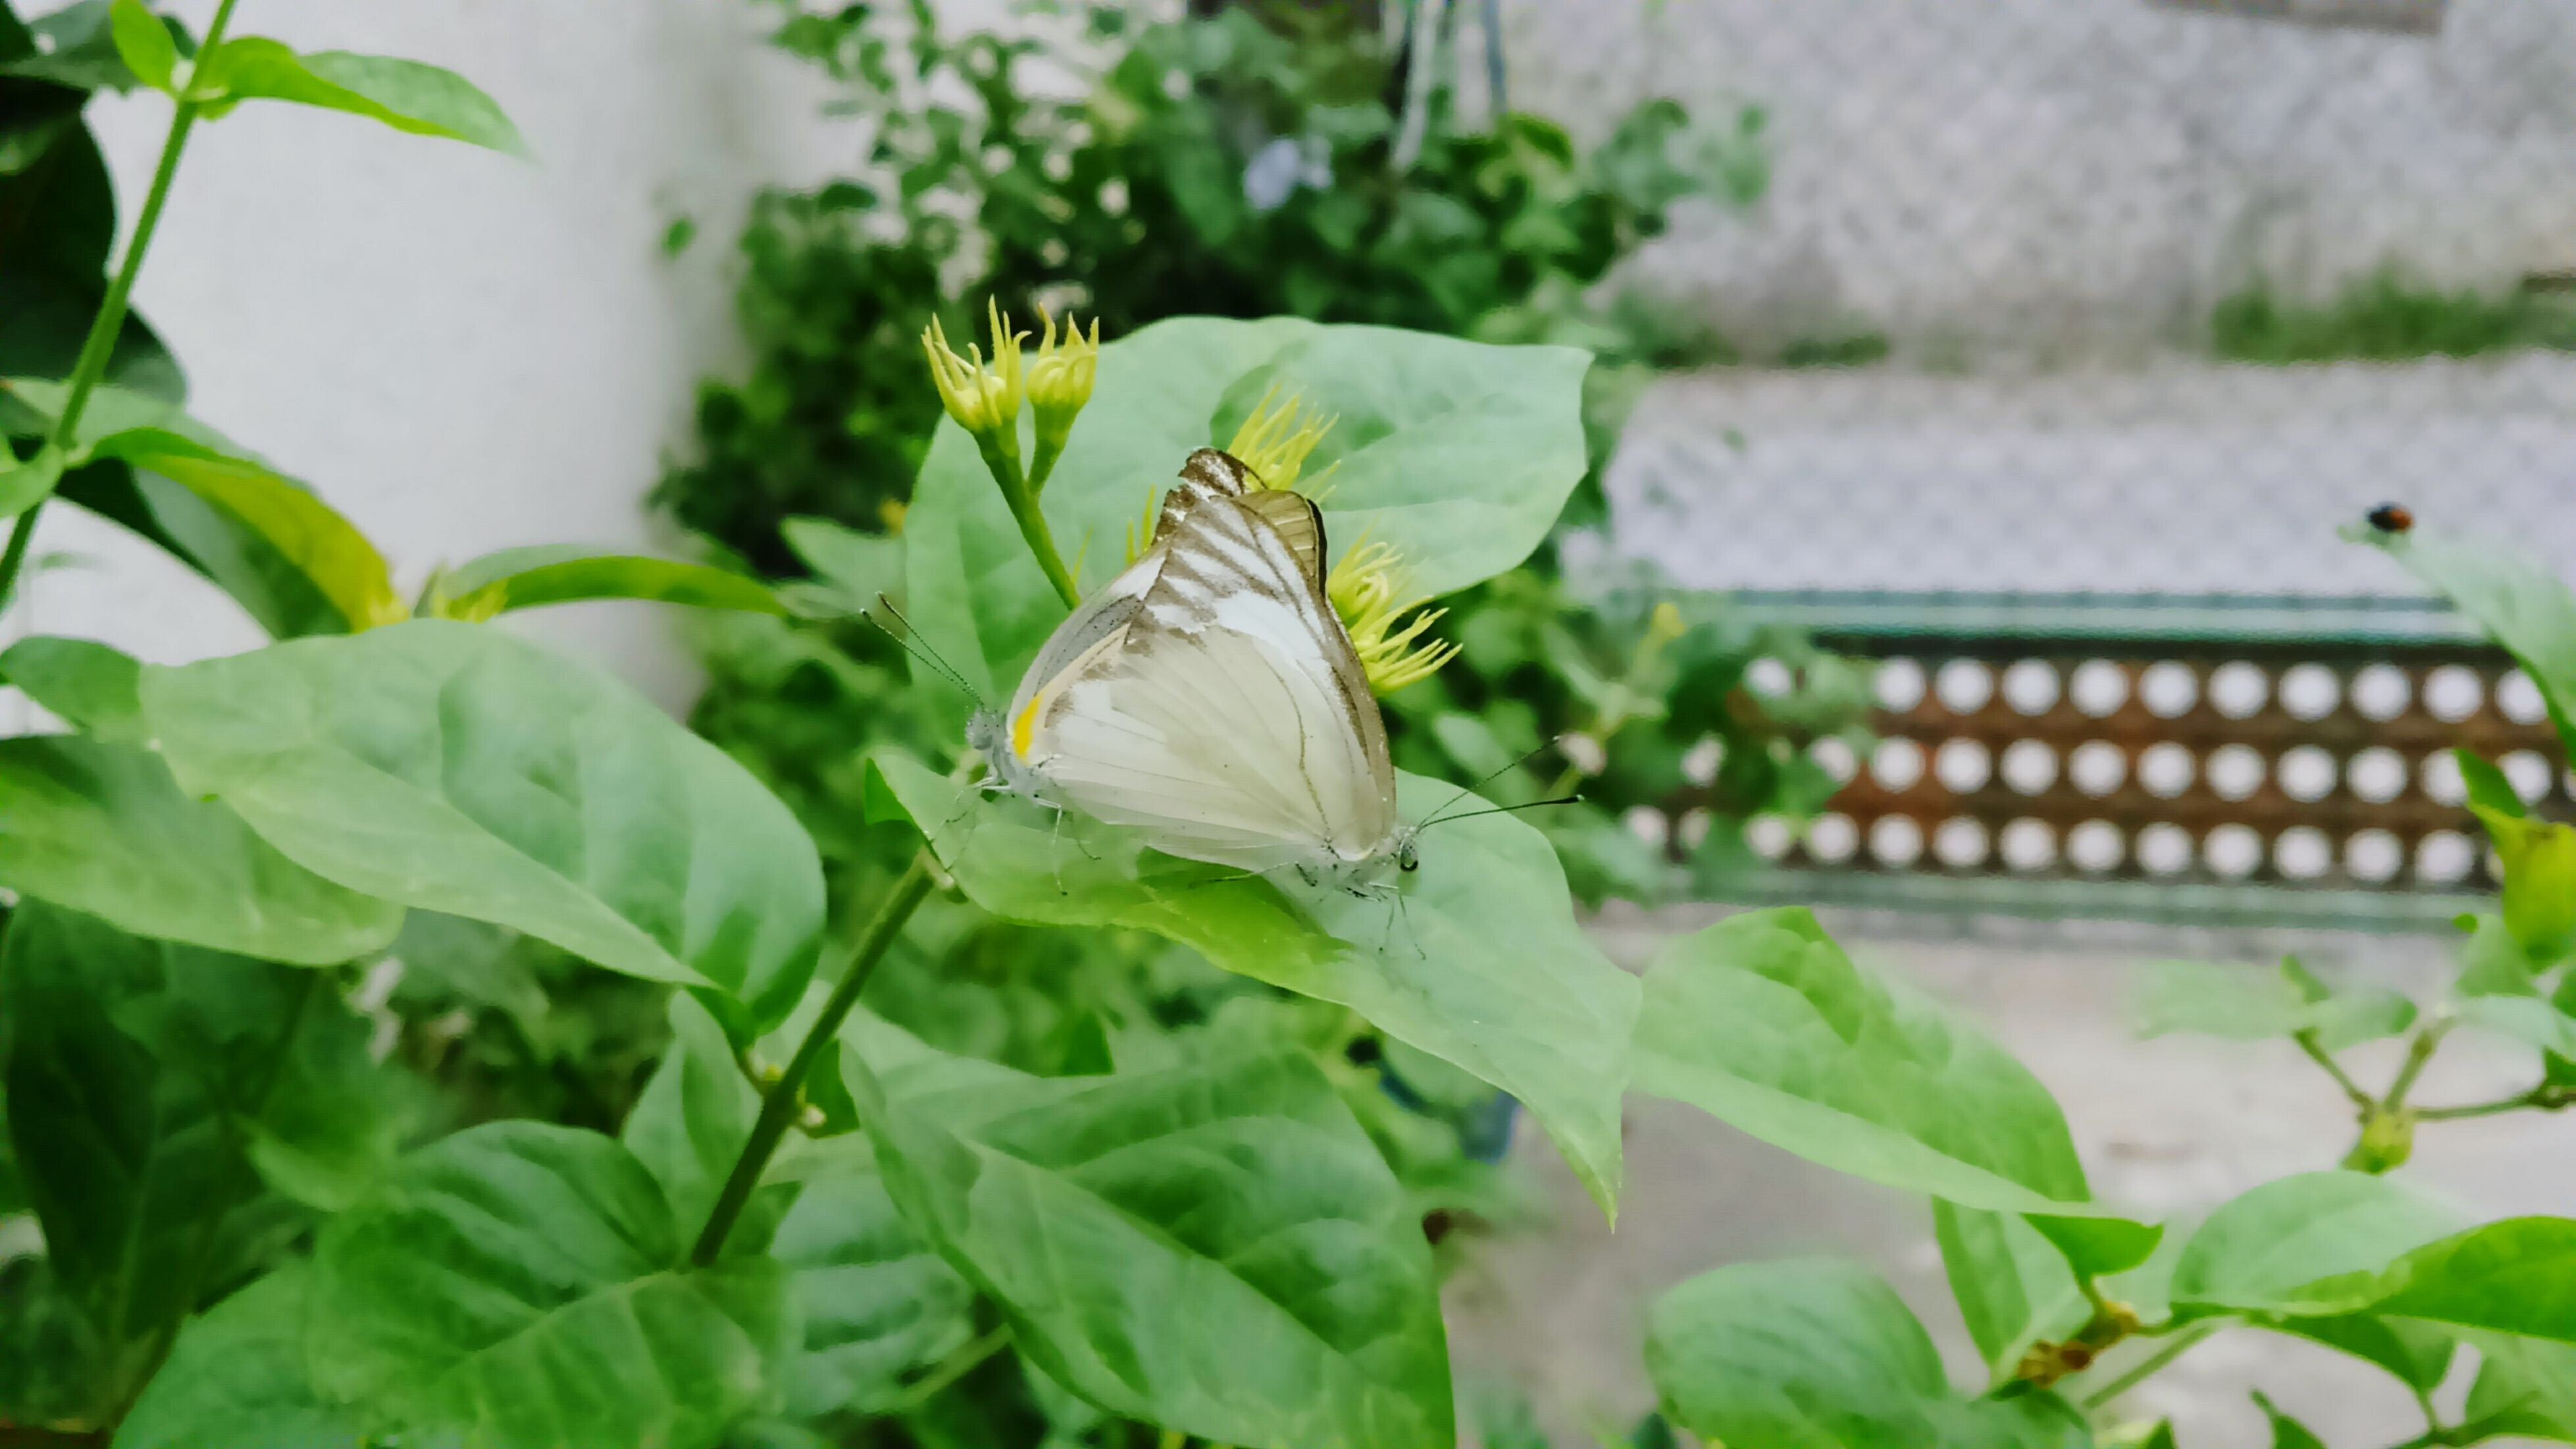 insect, leaf, one animal, animals in the wild, plant, animal themes, close-up, wildlife, focus on foreground, green color, butterfly - insect, growth, butterfly, nature, selective focus, day, outdoors, no people, animal antenna, potted plant